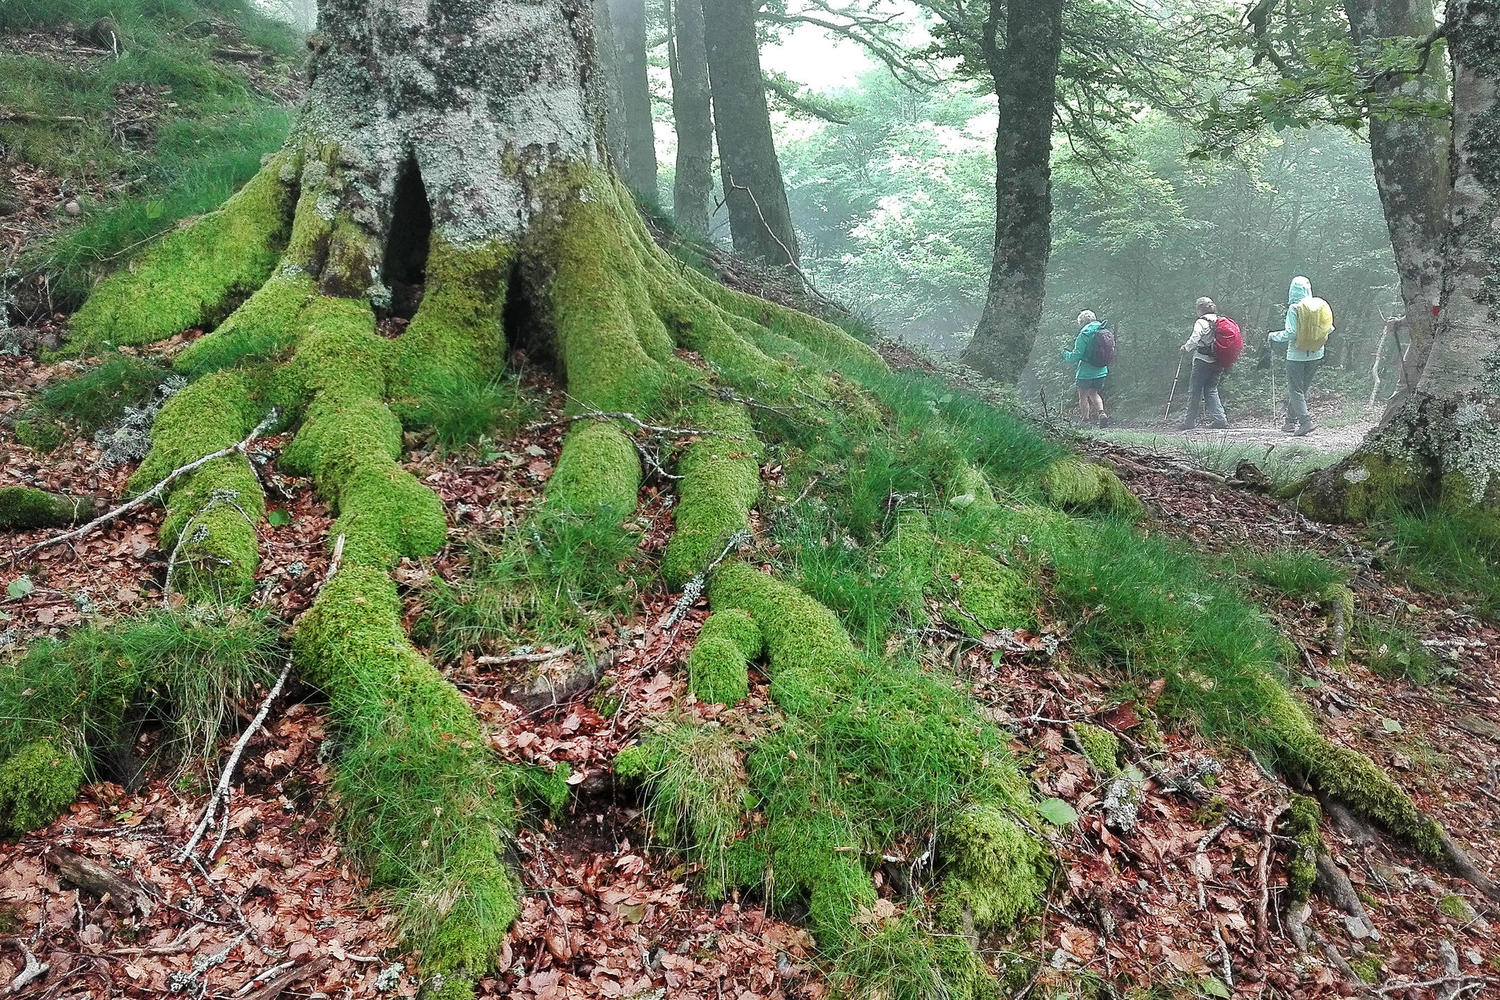 Hiking along the Camino through the green misty forests near Roncesvalles